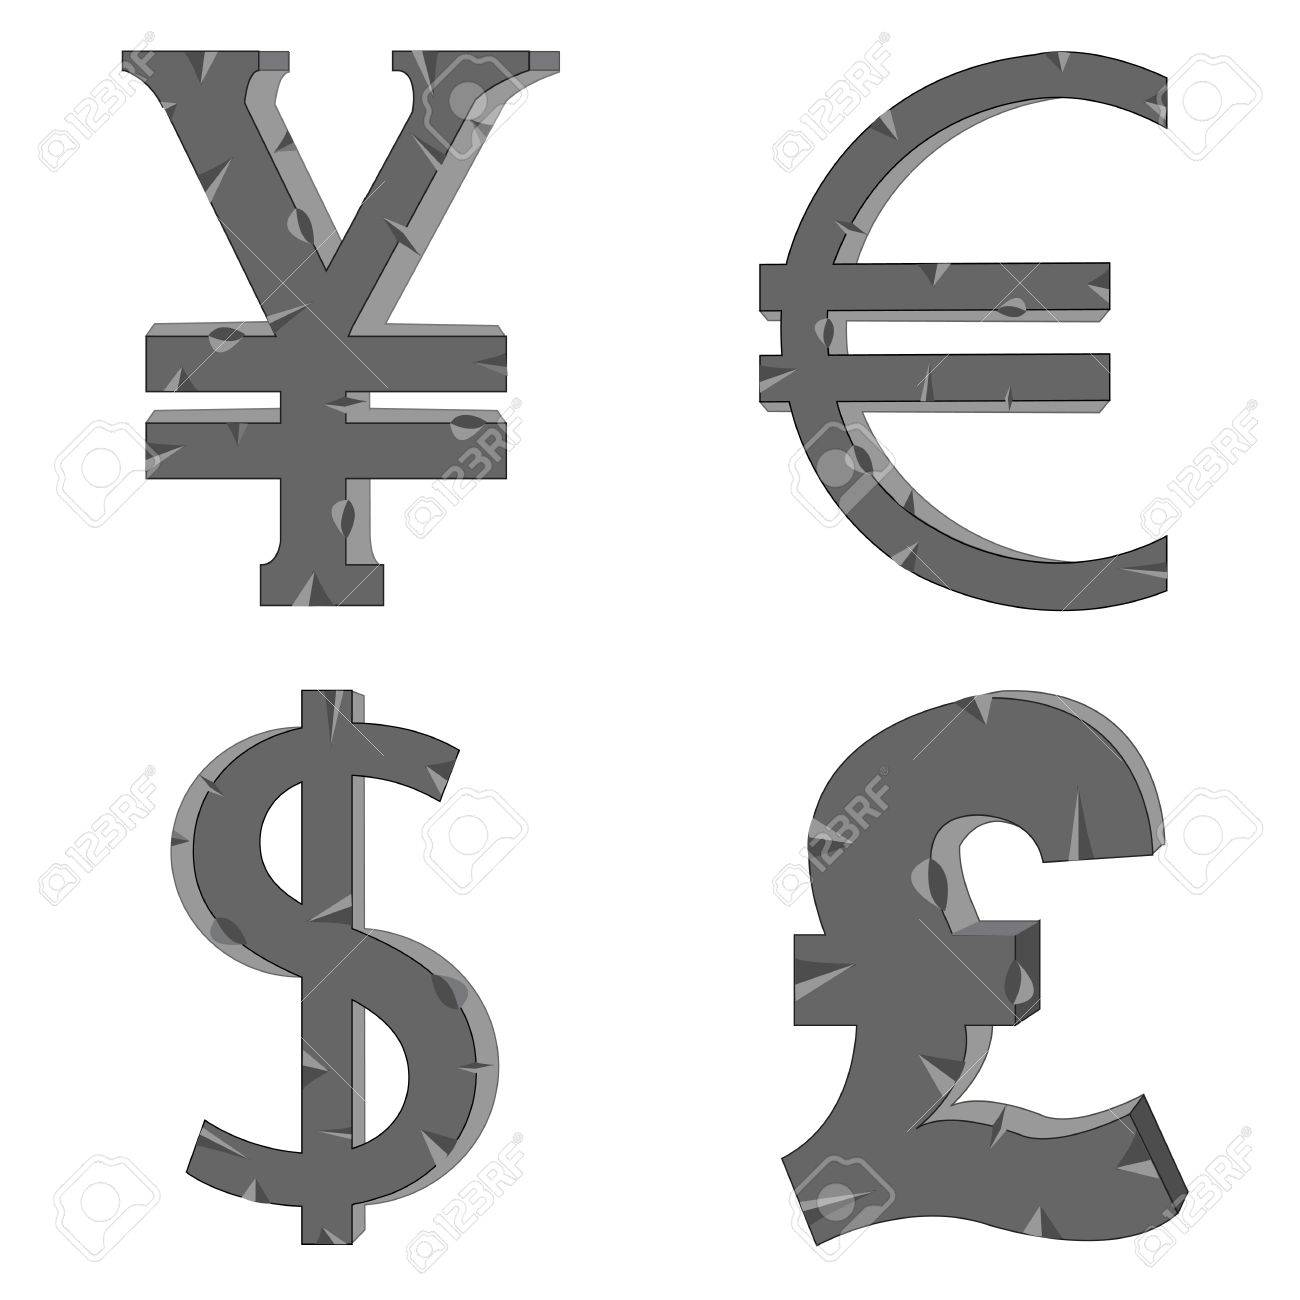 The Money Signs And Symbols Of The Different Countries Royalty Free